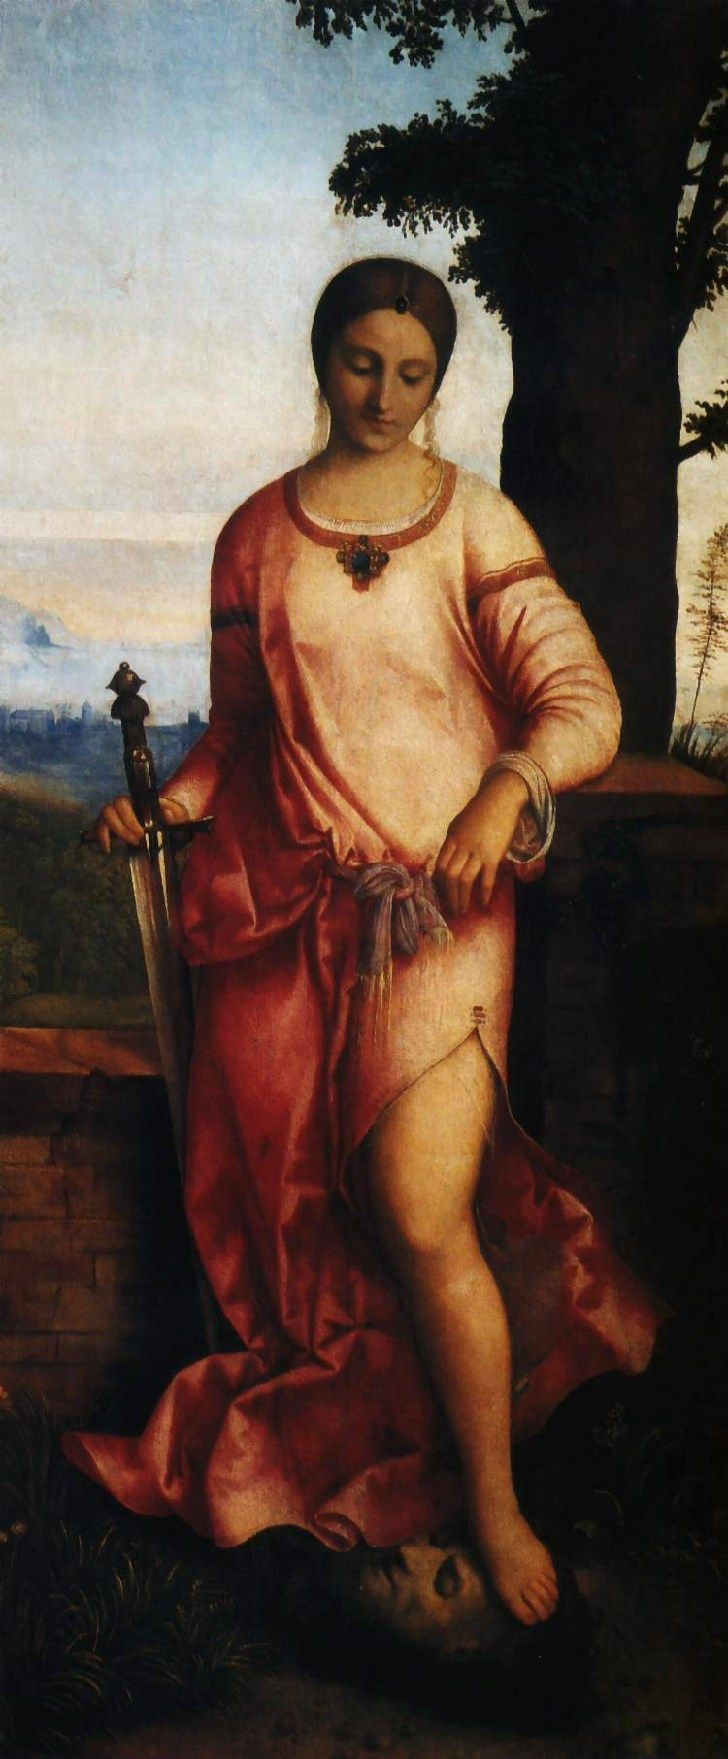 Giorgione, Judith. 1504. Oil on canvas trasferred from panel. 144 x 68 cm. Hermitage Museum, Saint Petersburg, Russia.